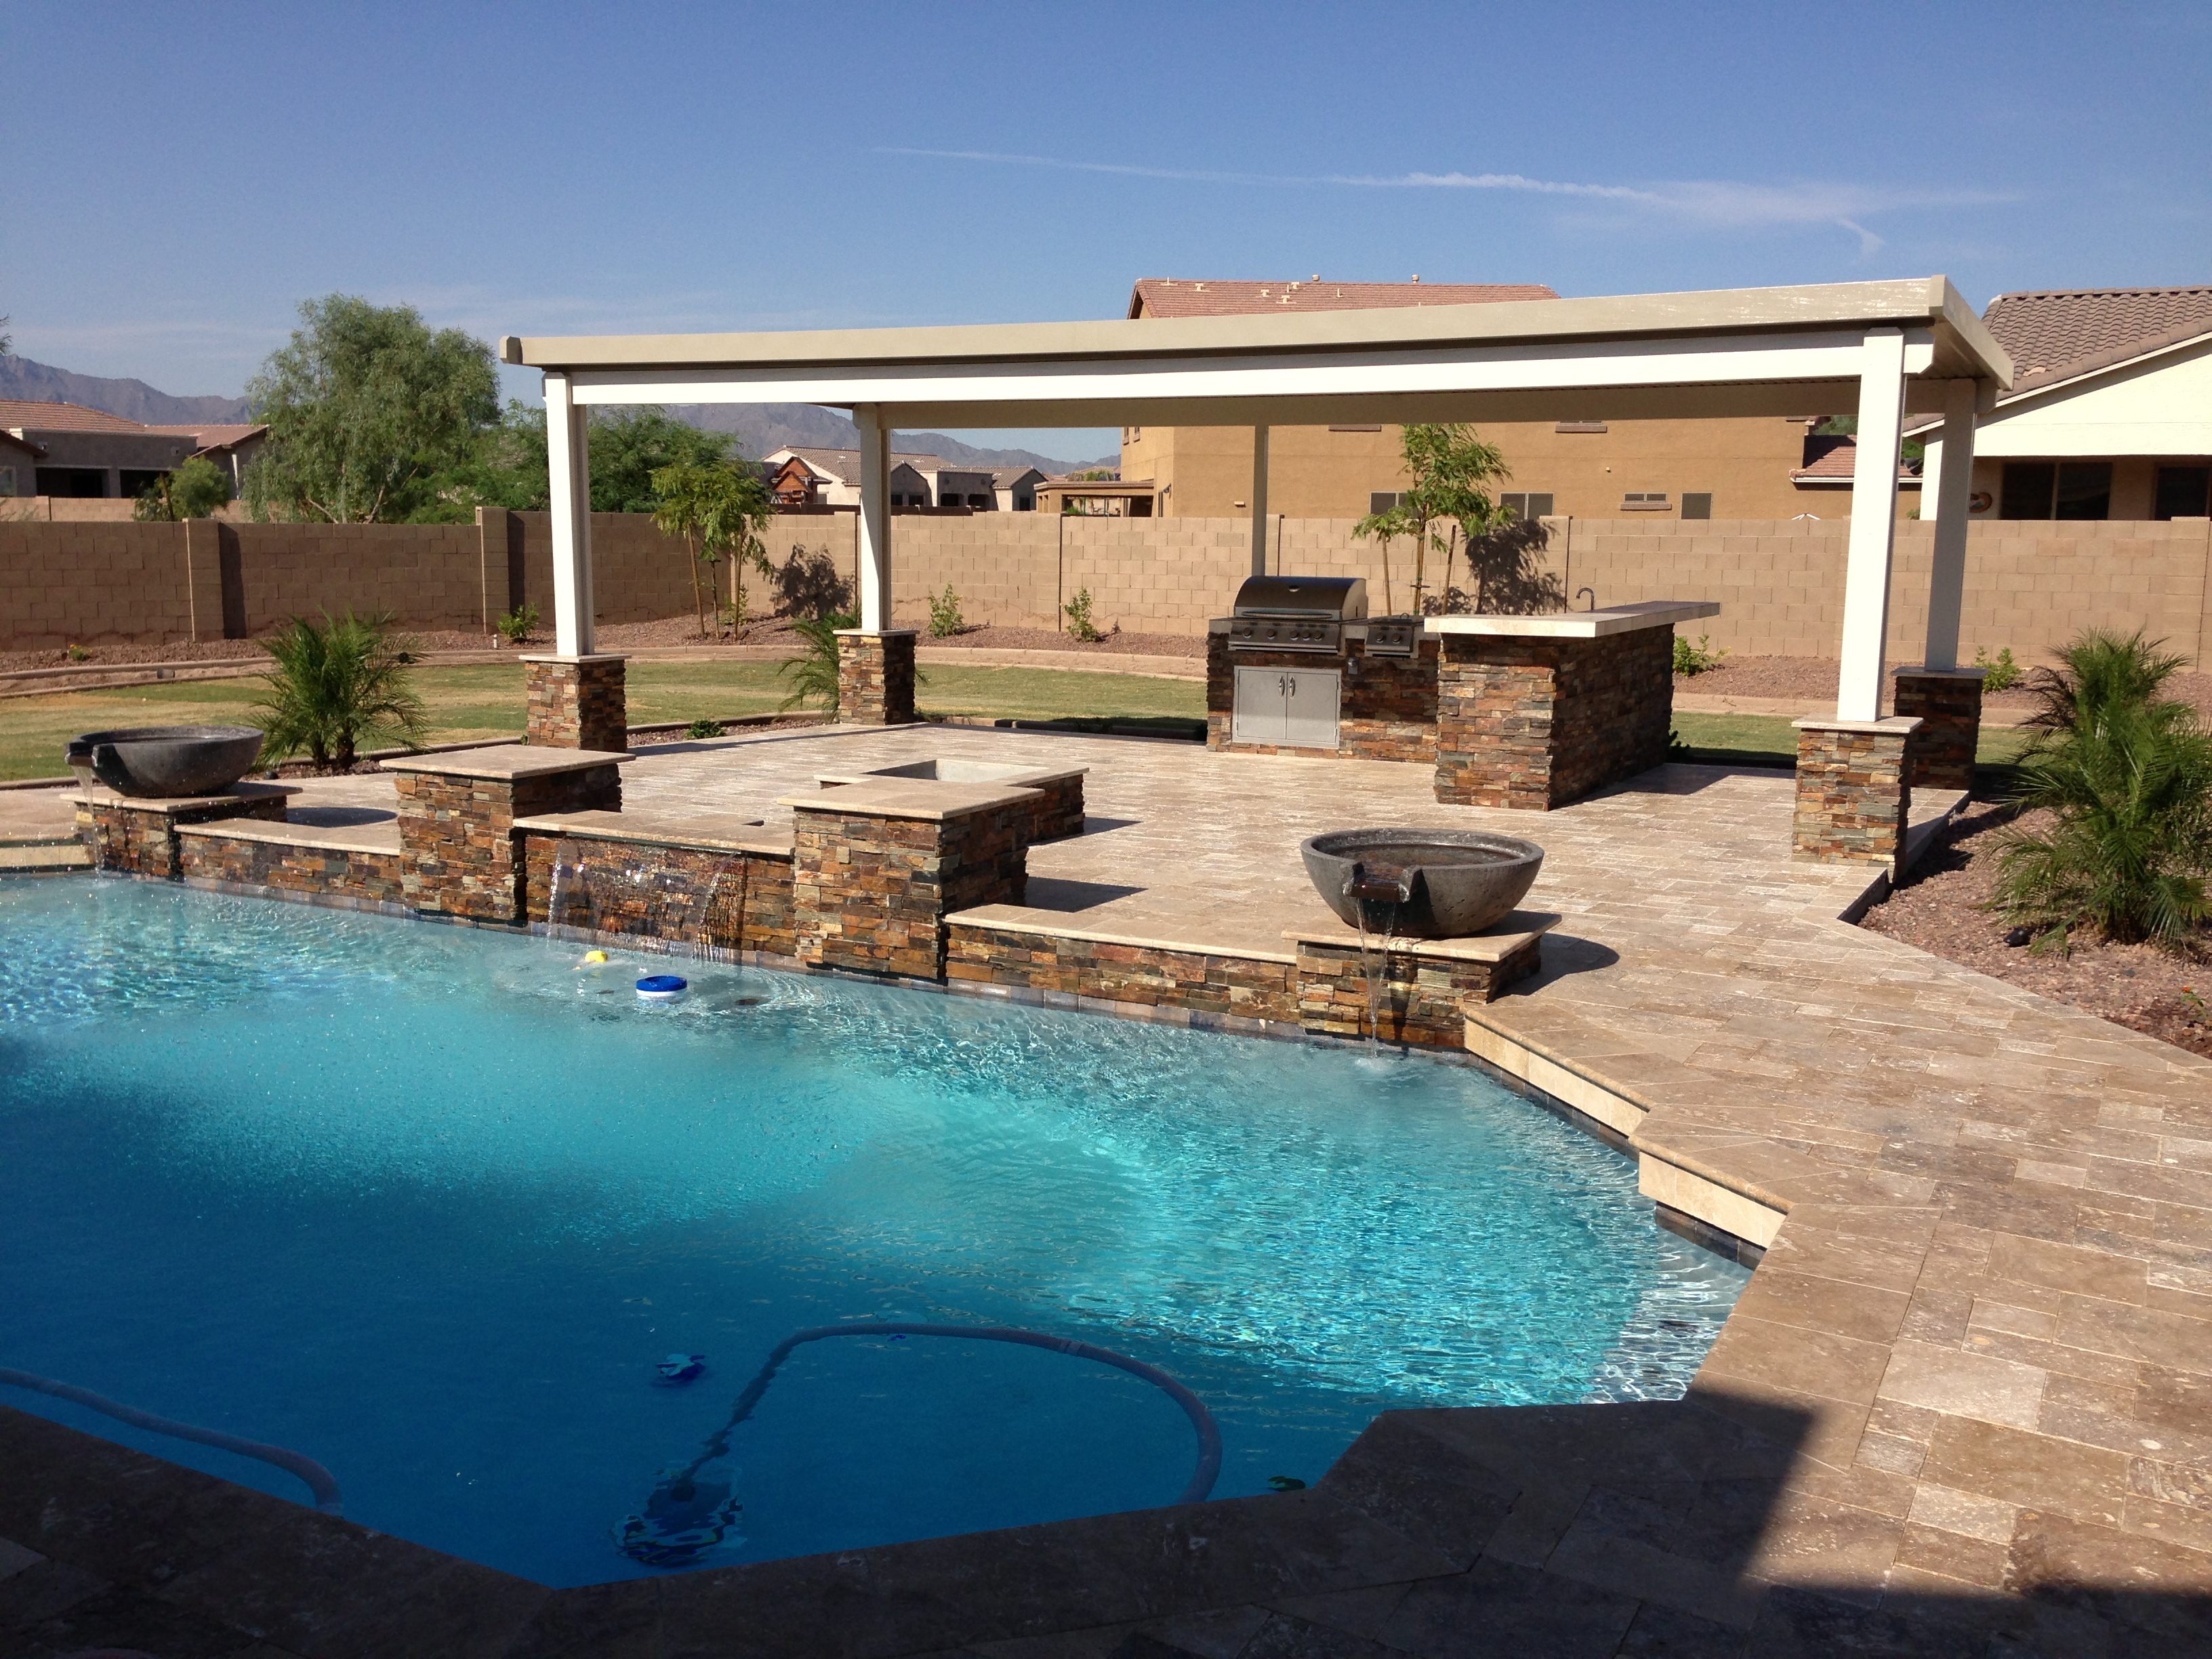 An Arizona Outdoor Living Space to Enjoy this Season